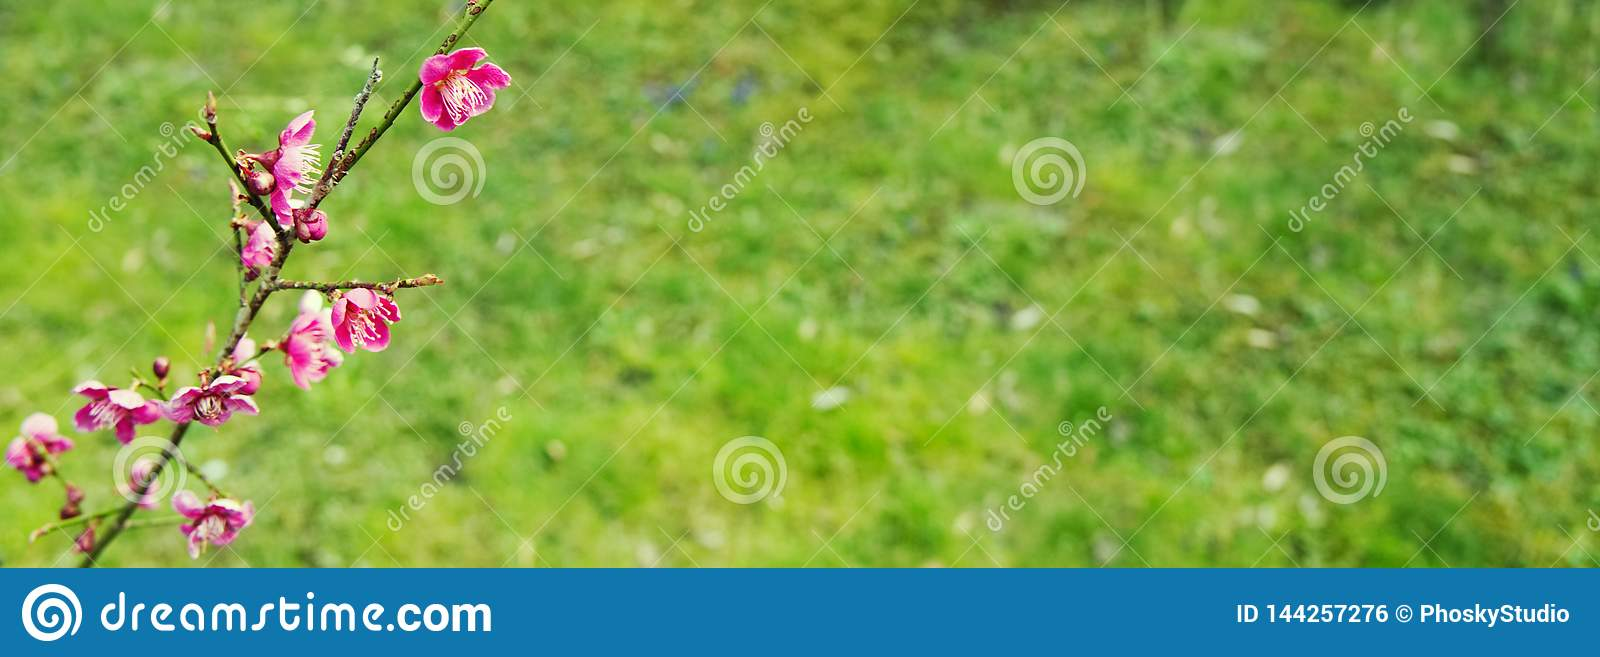 Pink flowers on a background of grass.